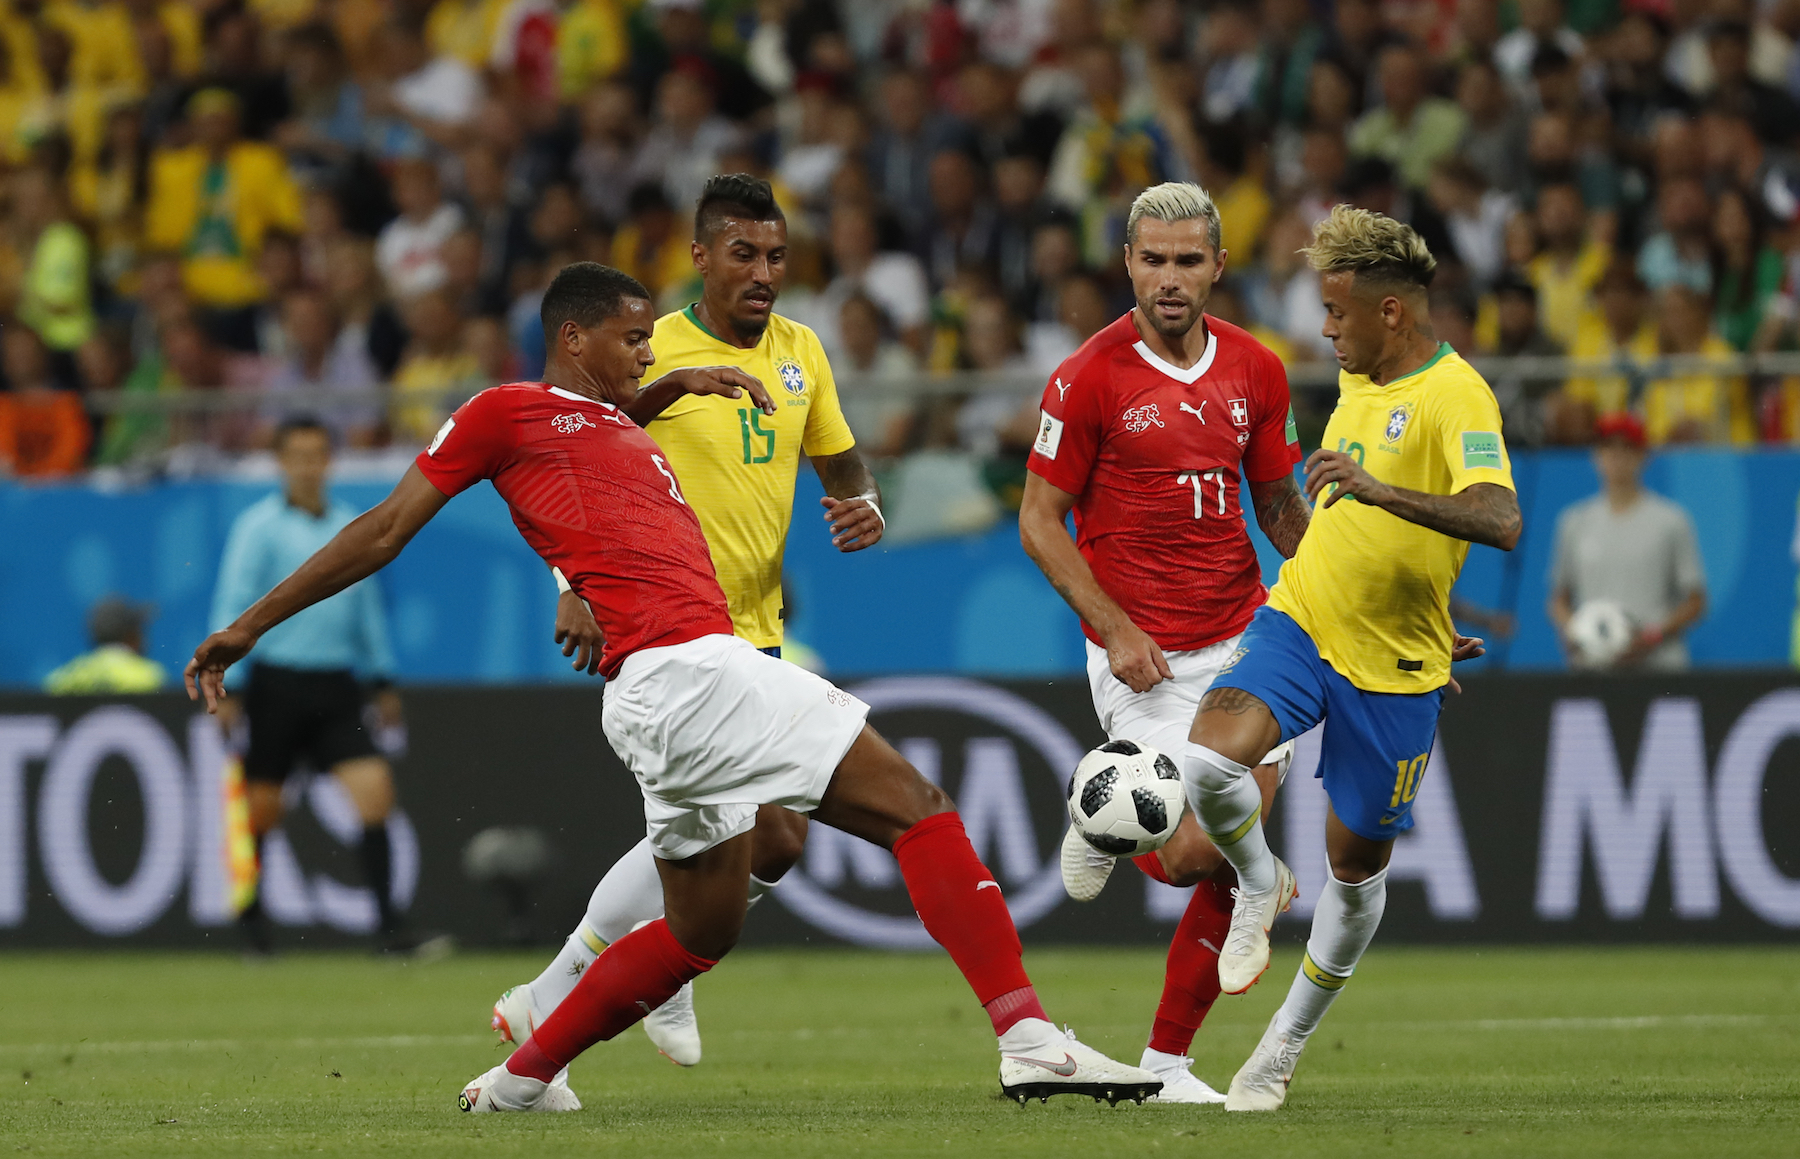 <div class='meta'><div class='origin-logo' data-origin='AP'></div><span class='caption-text' data-credit='AP Photo/Darko Vojinovic'>Brazil's Neymar, right, duels for the ball with Switzerland's Manuel Akanji during the group E match between Brazil and Switzerland at the 2018 soccer World Cup.</span></div>